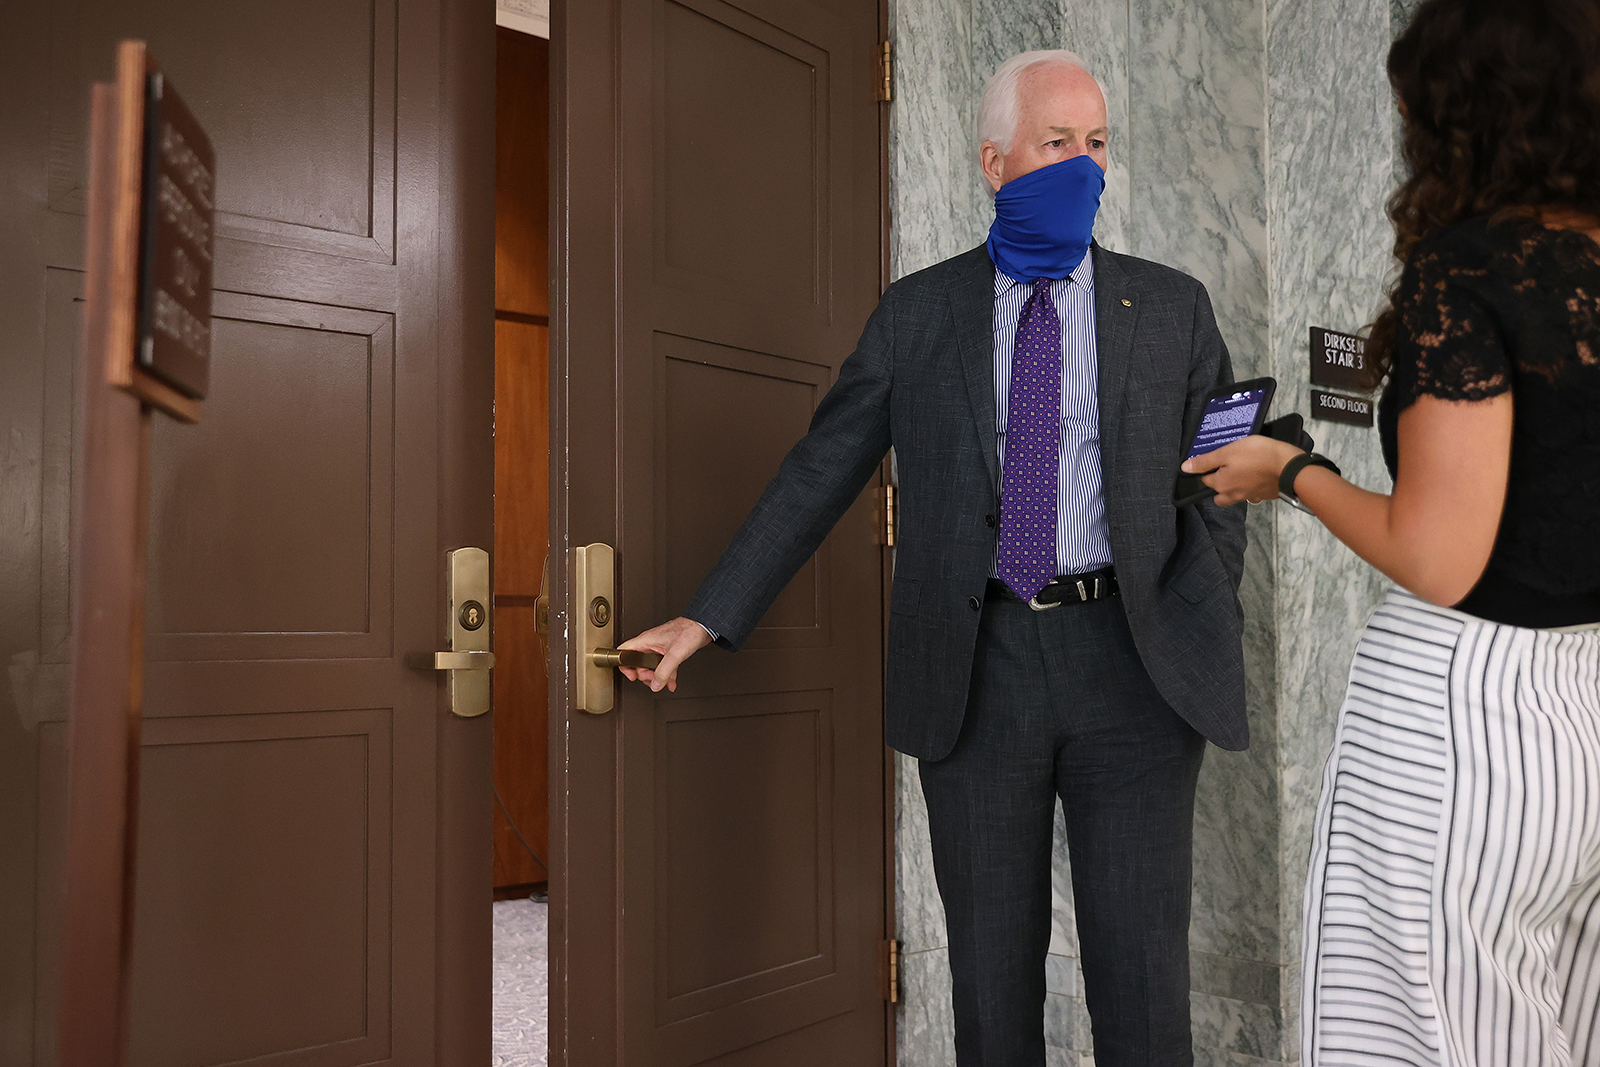 Sen. John Cornyn talks to a reporter as he arrives for the weekly Senate Republican policy luncheon on Tuesday in Washington.